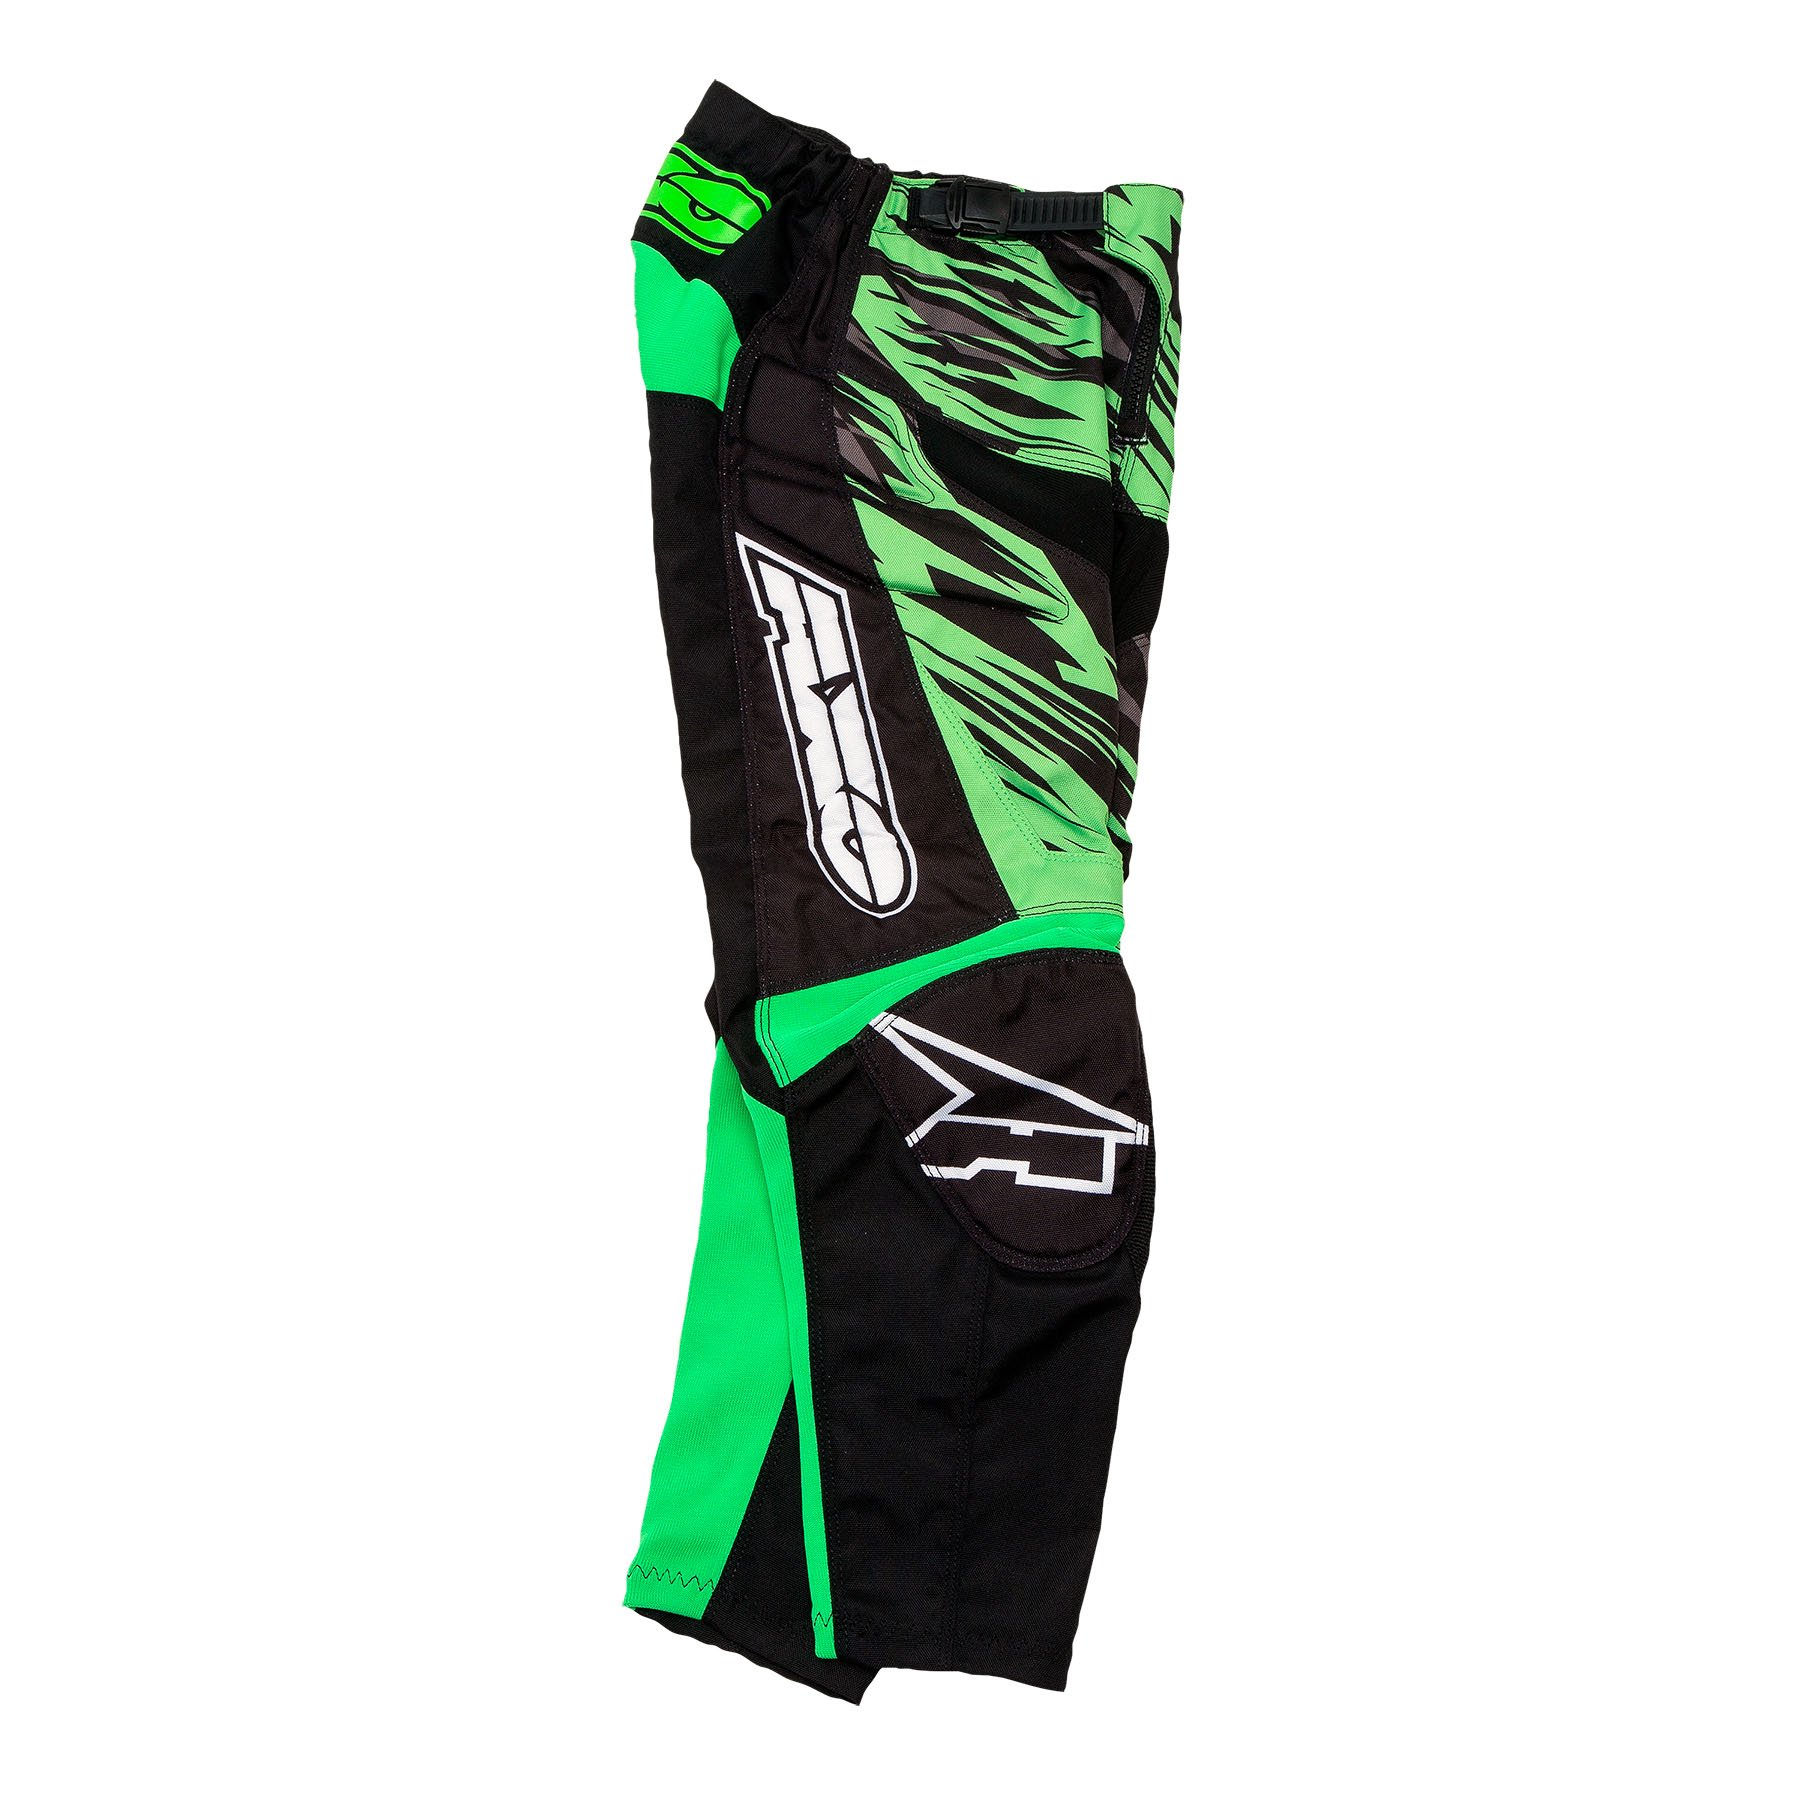 AXO Prodigy Junior Pants (Black/Fluorescent Green, Size 26)